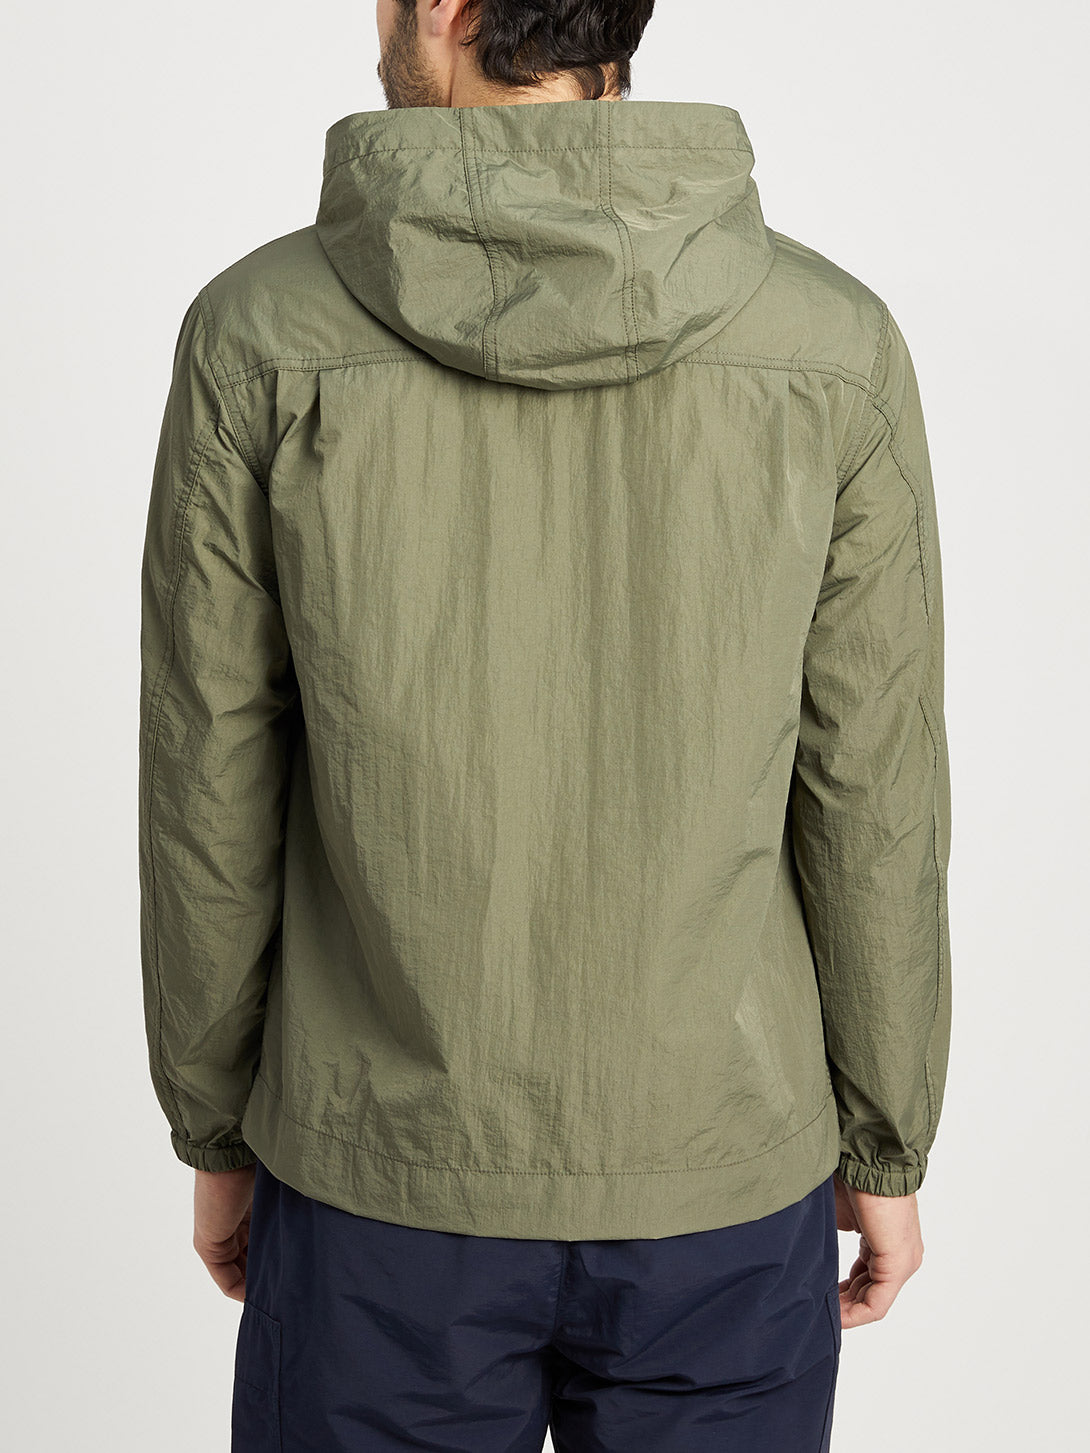 OLIVE GREEN jackets for men cayden anorak ons clothing